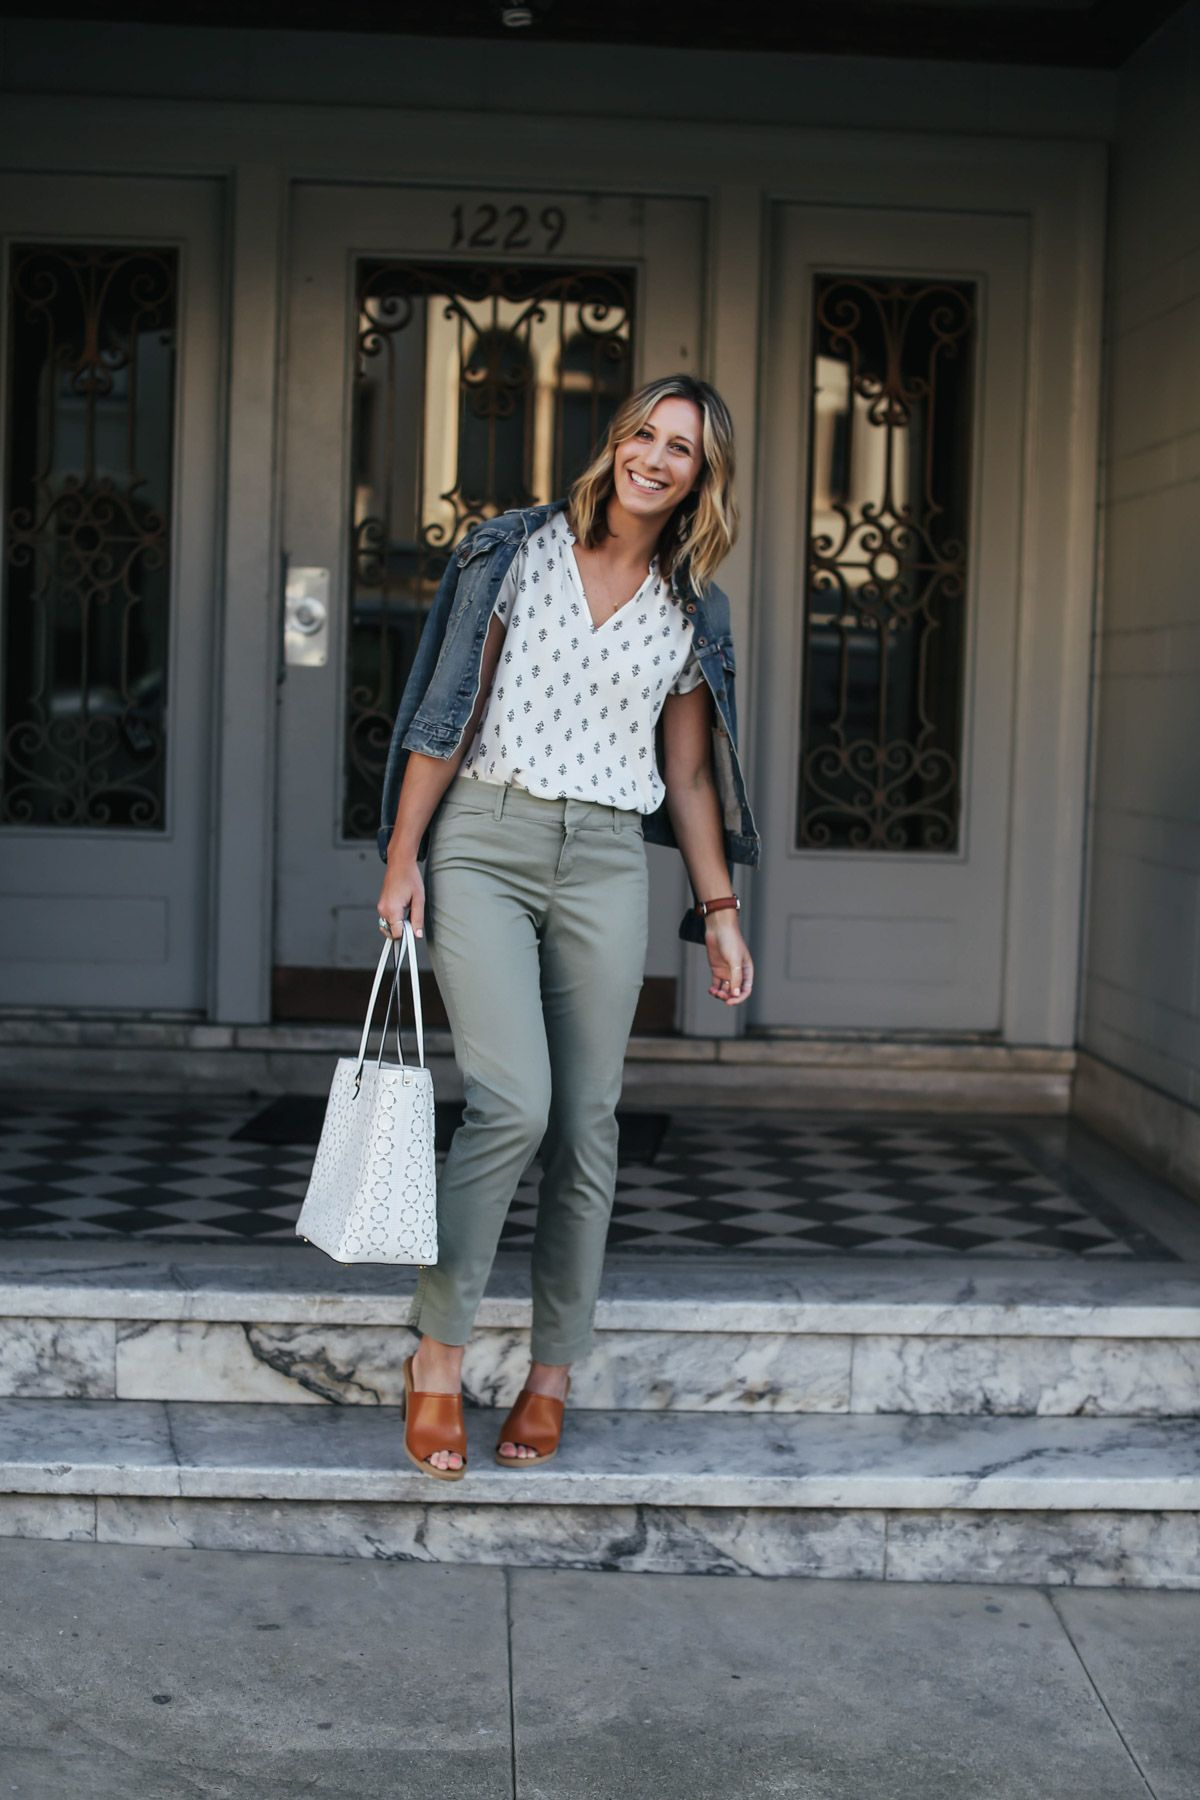 68f72cadee5 How to Wear Spring Trends at Work